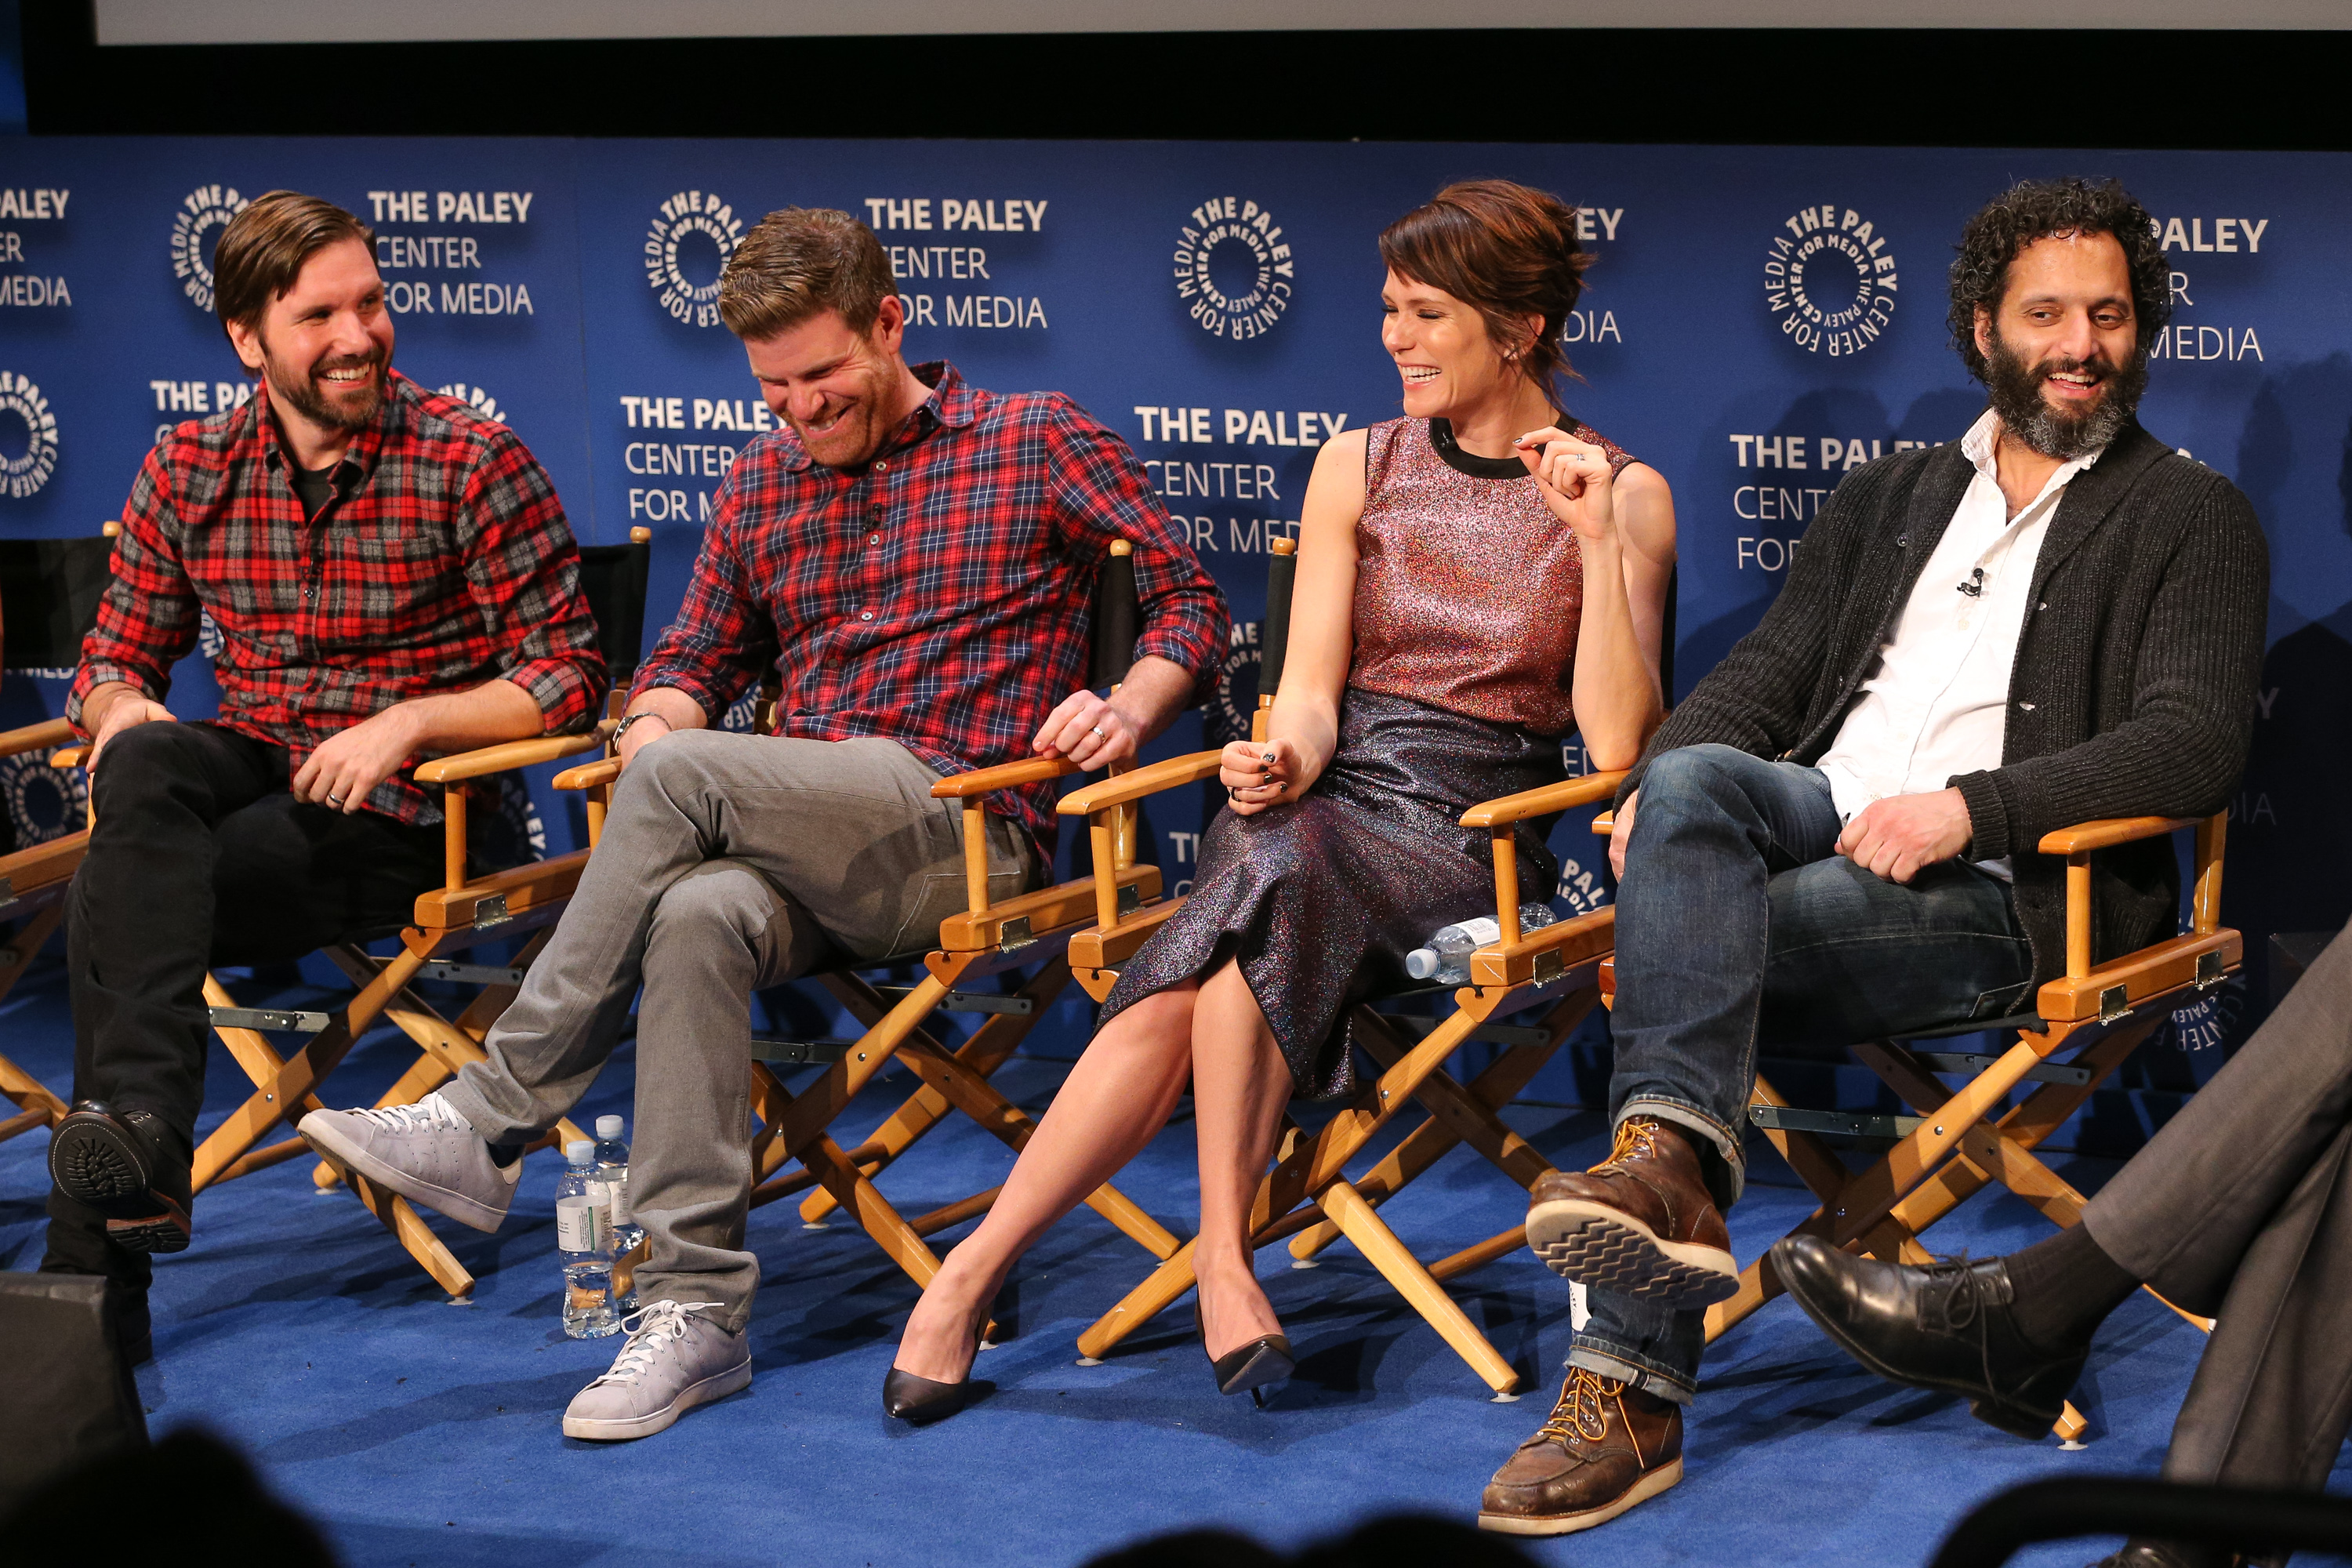 SAYING GOODBYE TO THE LEAGUE AT THE PALEY CENTER